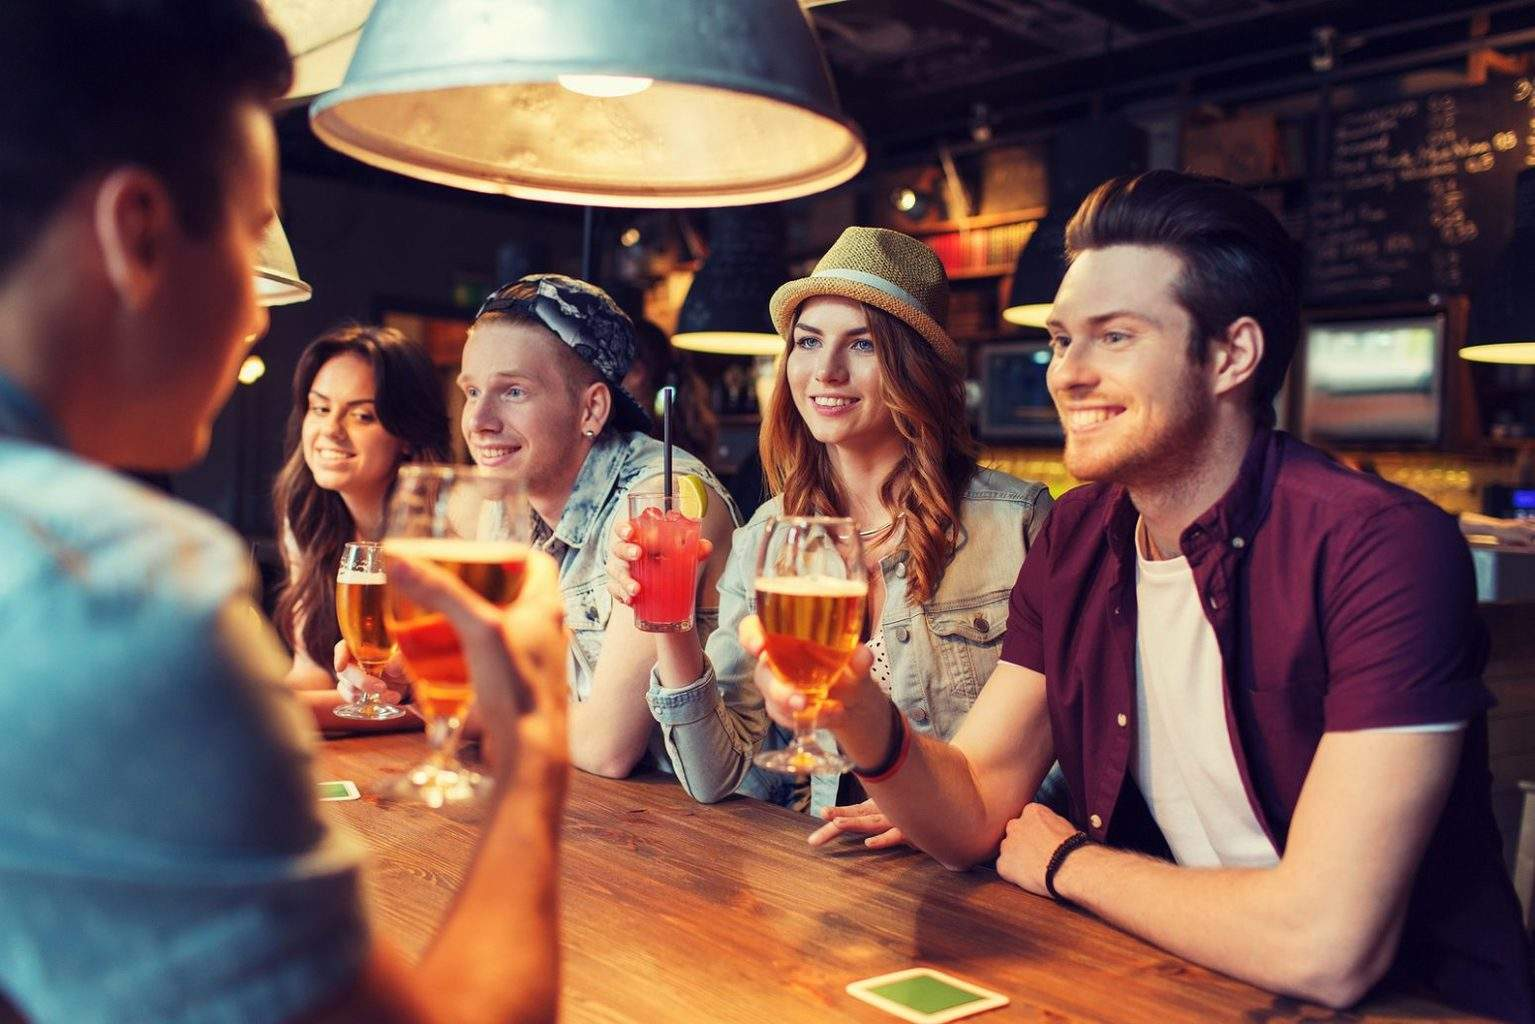 people, leisure, friendship and communication concept – group of